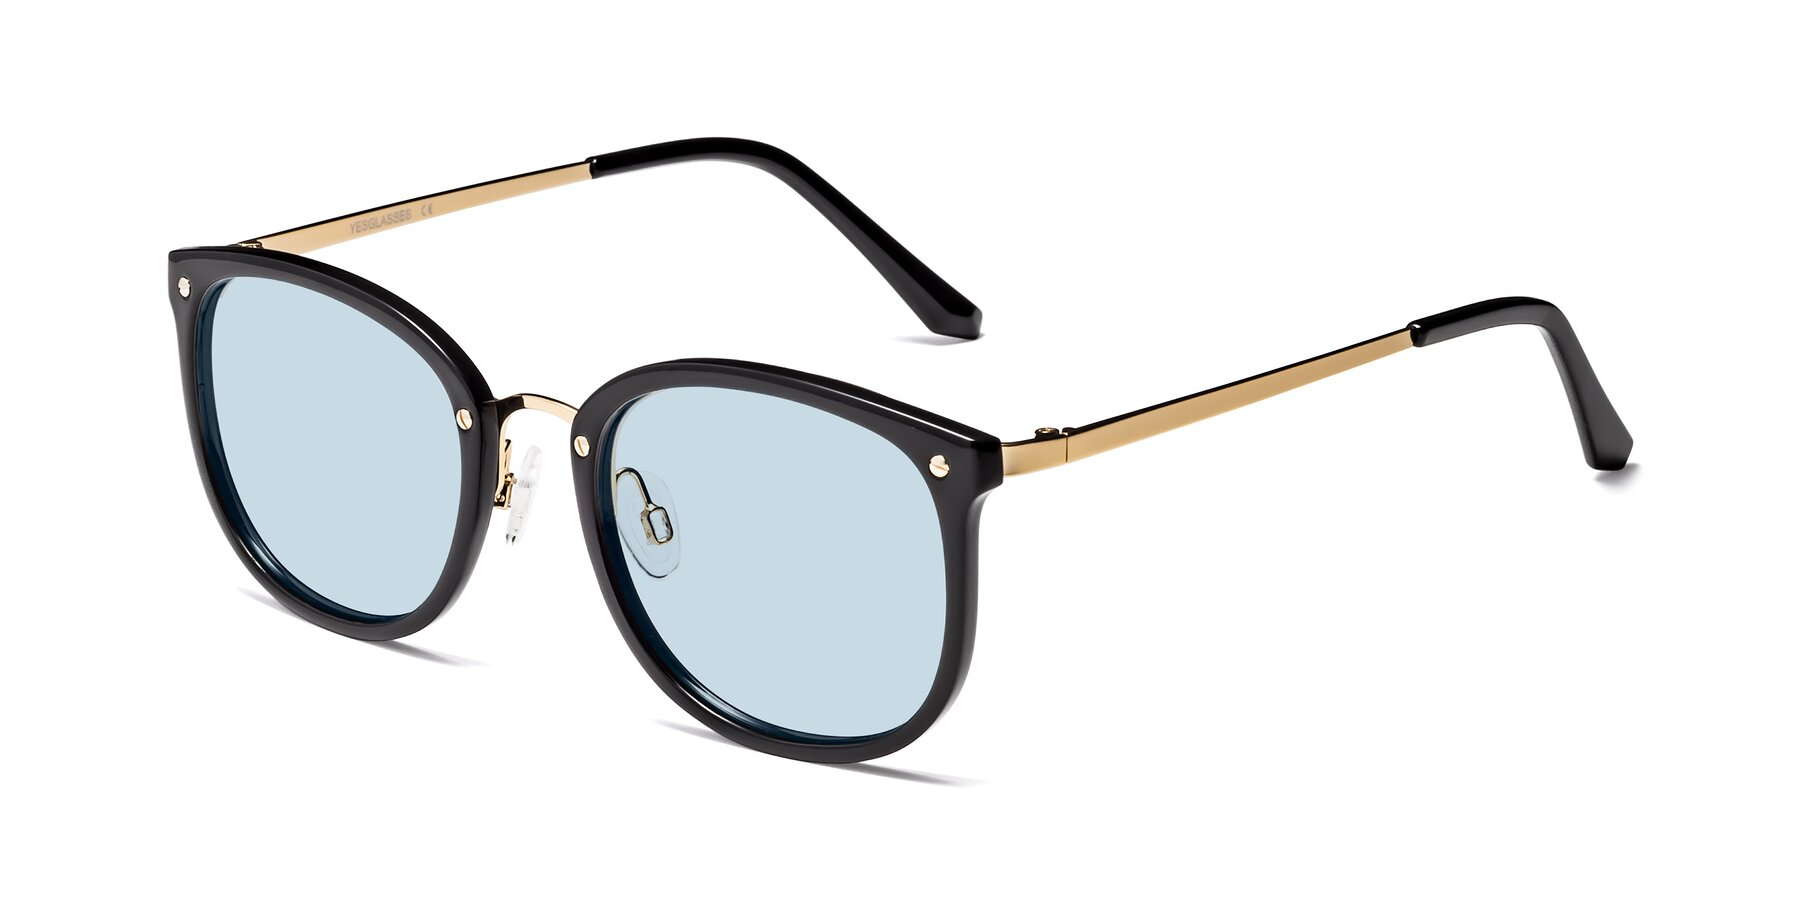 Angle of Timeless in Black-Gold with Light Blue Tinted Lenses